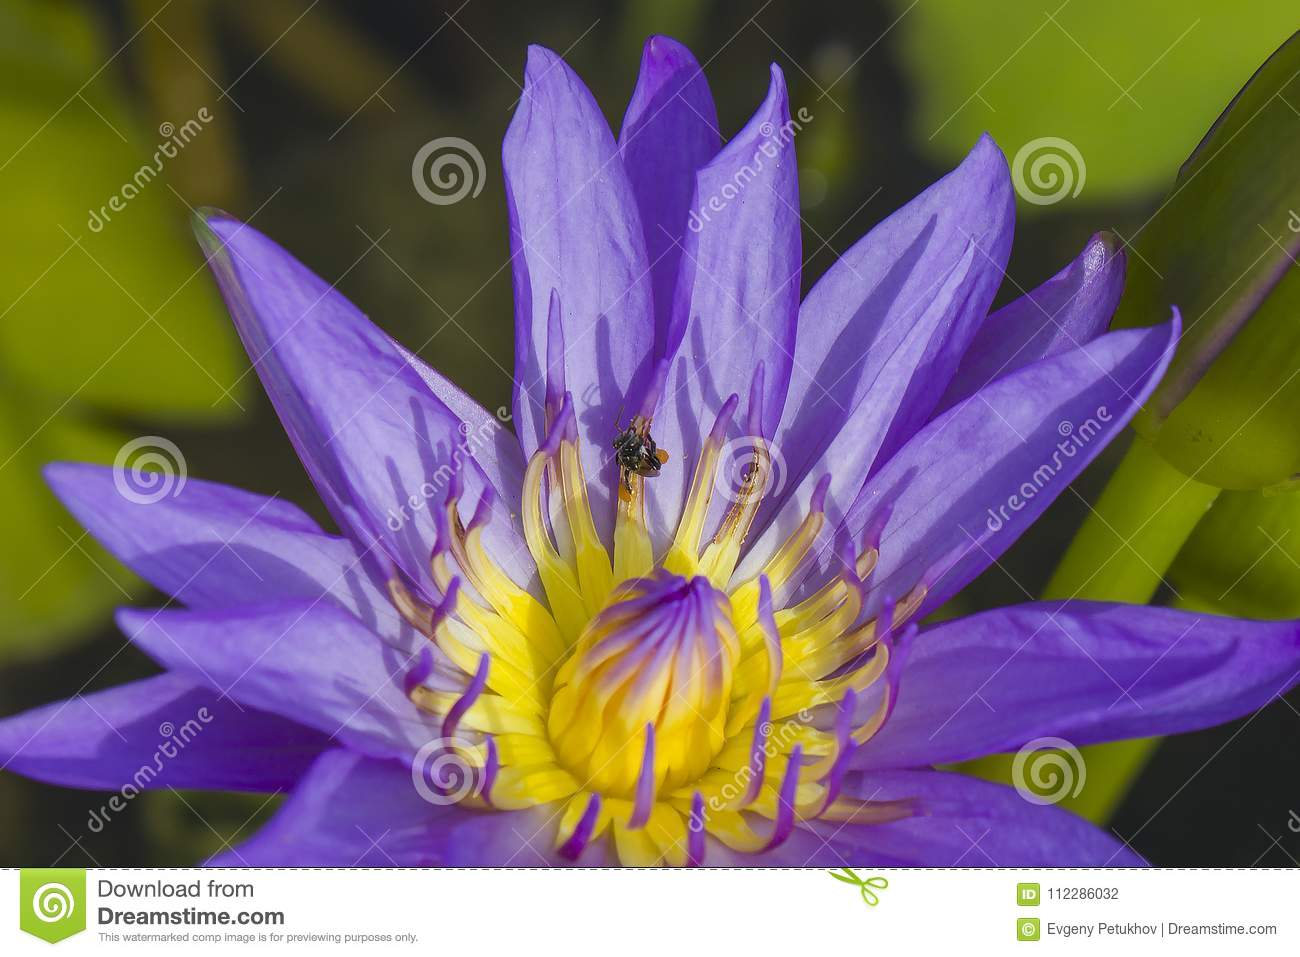 Elegant blue lily flower lotus in water the lotus flower water lily elegant blue lily flower lotus in water the lotus flower water lily is a national flower for india symbol in asian culture izmirmasajfo